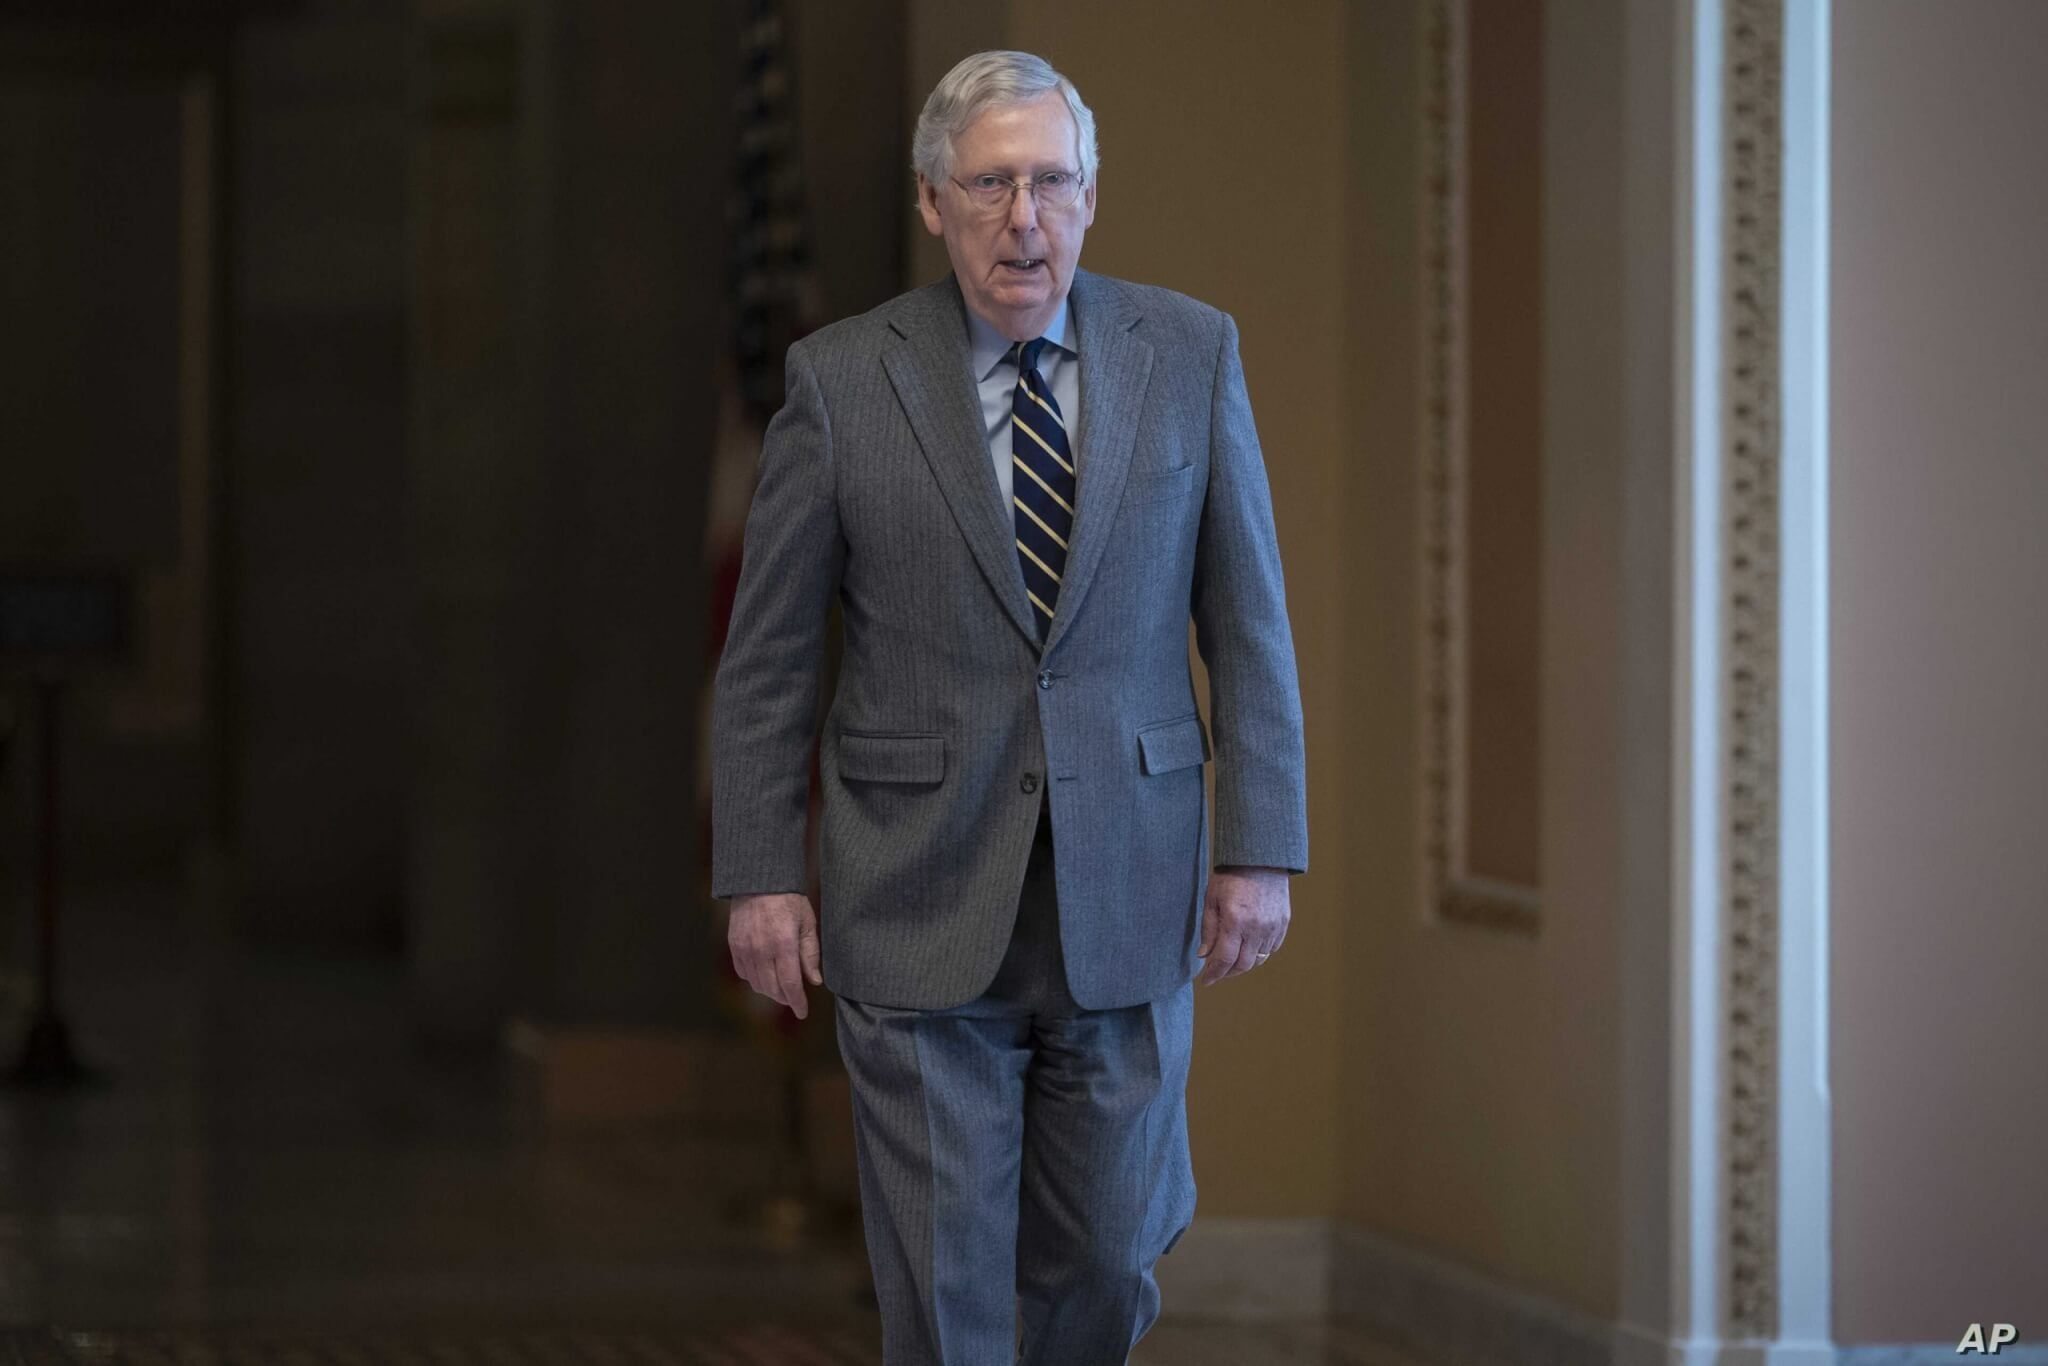 Senate Majority Leader Mitch McConnell, R-Ky., walks to the chamber for a vote on a measure to help tackle the coronavirus…